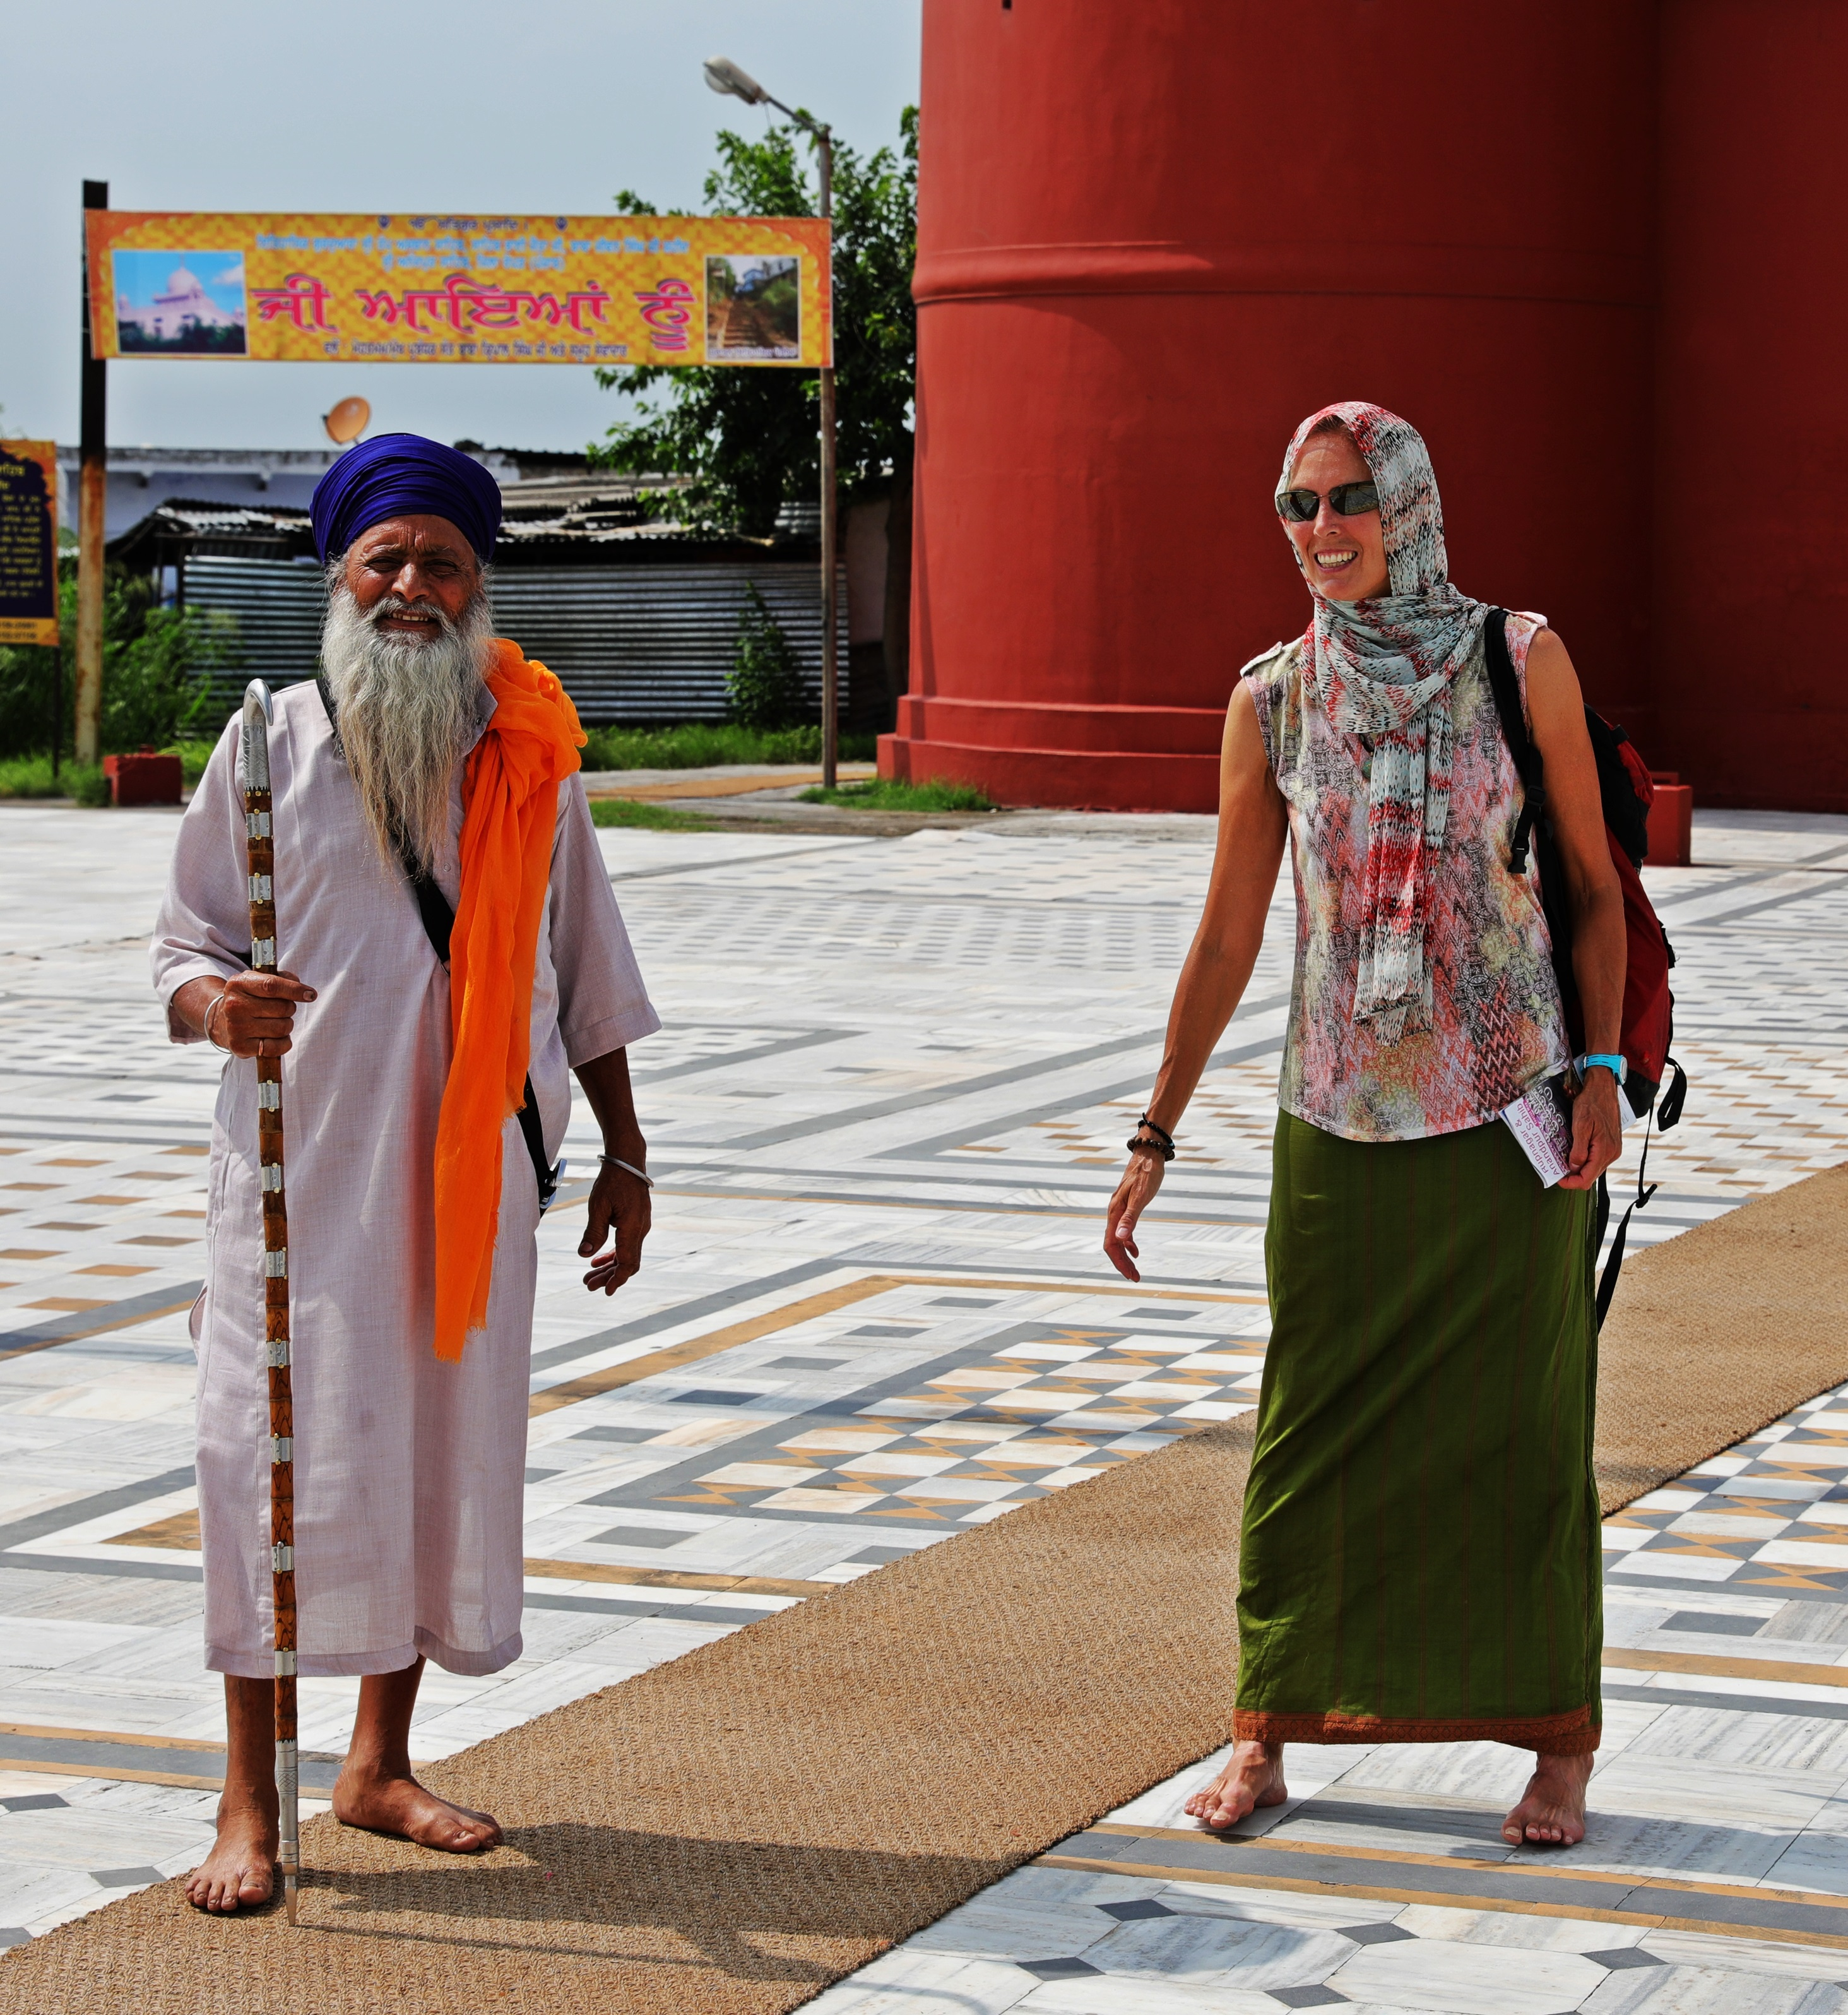 Sikh man in traditional dress outside Anandpur Fort